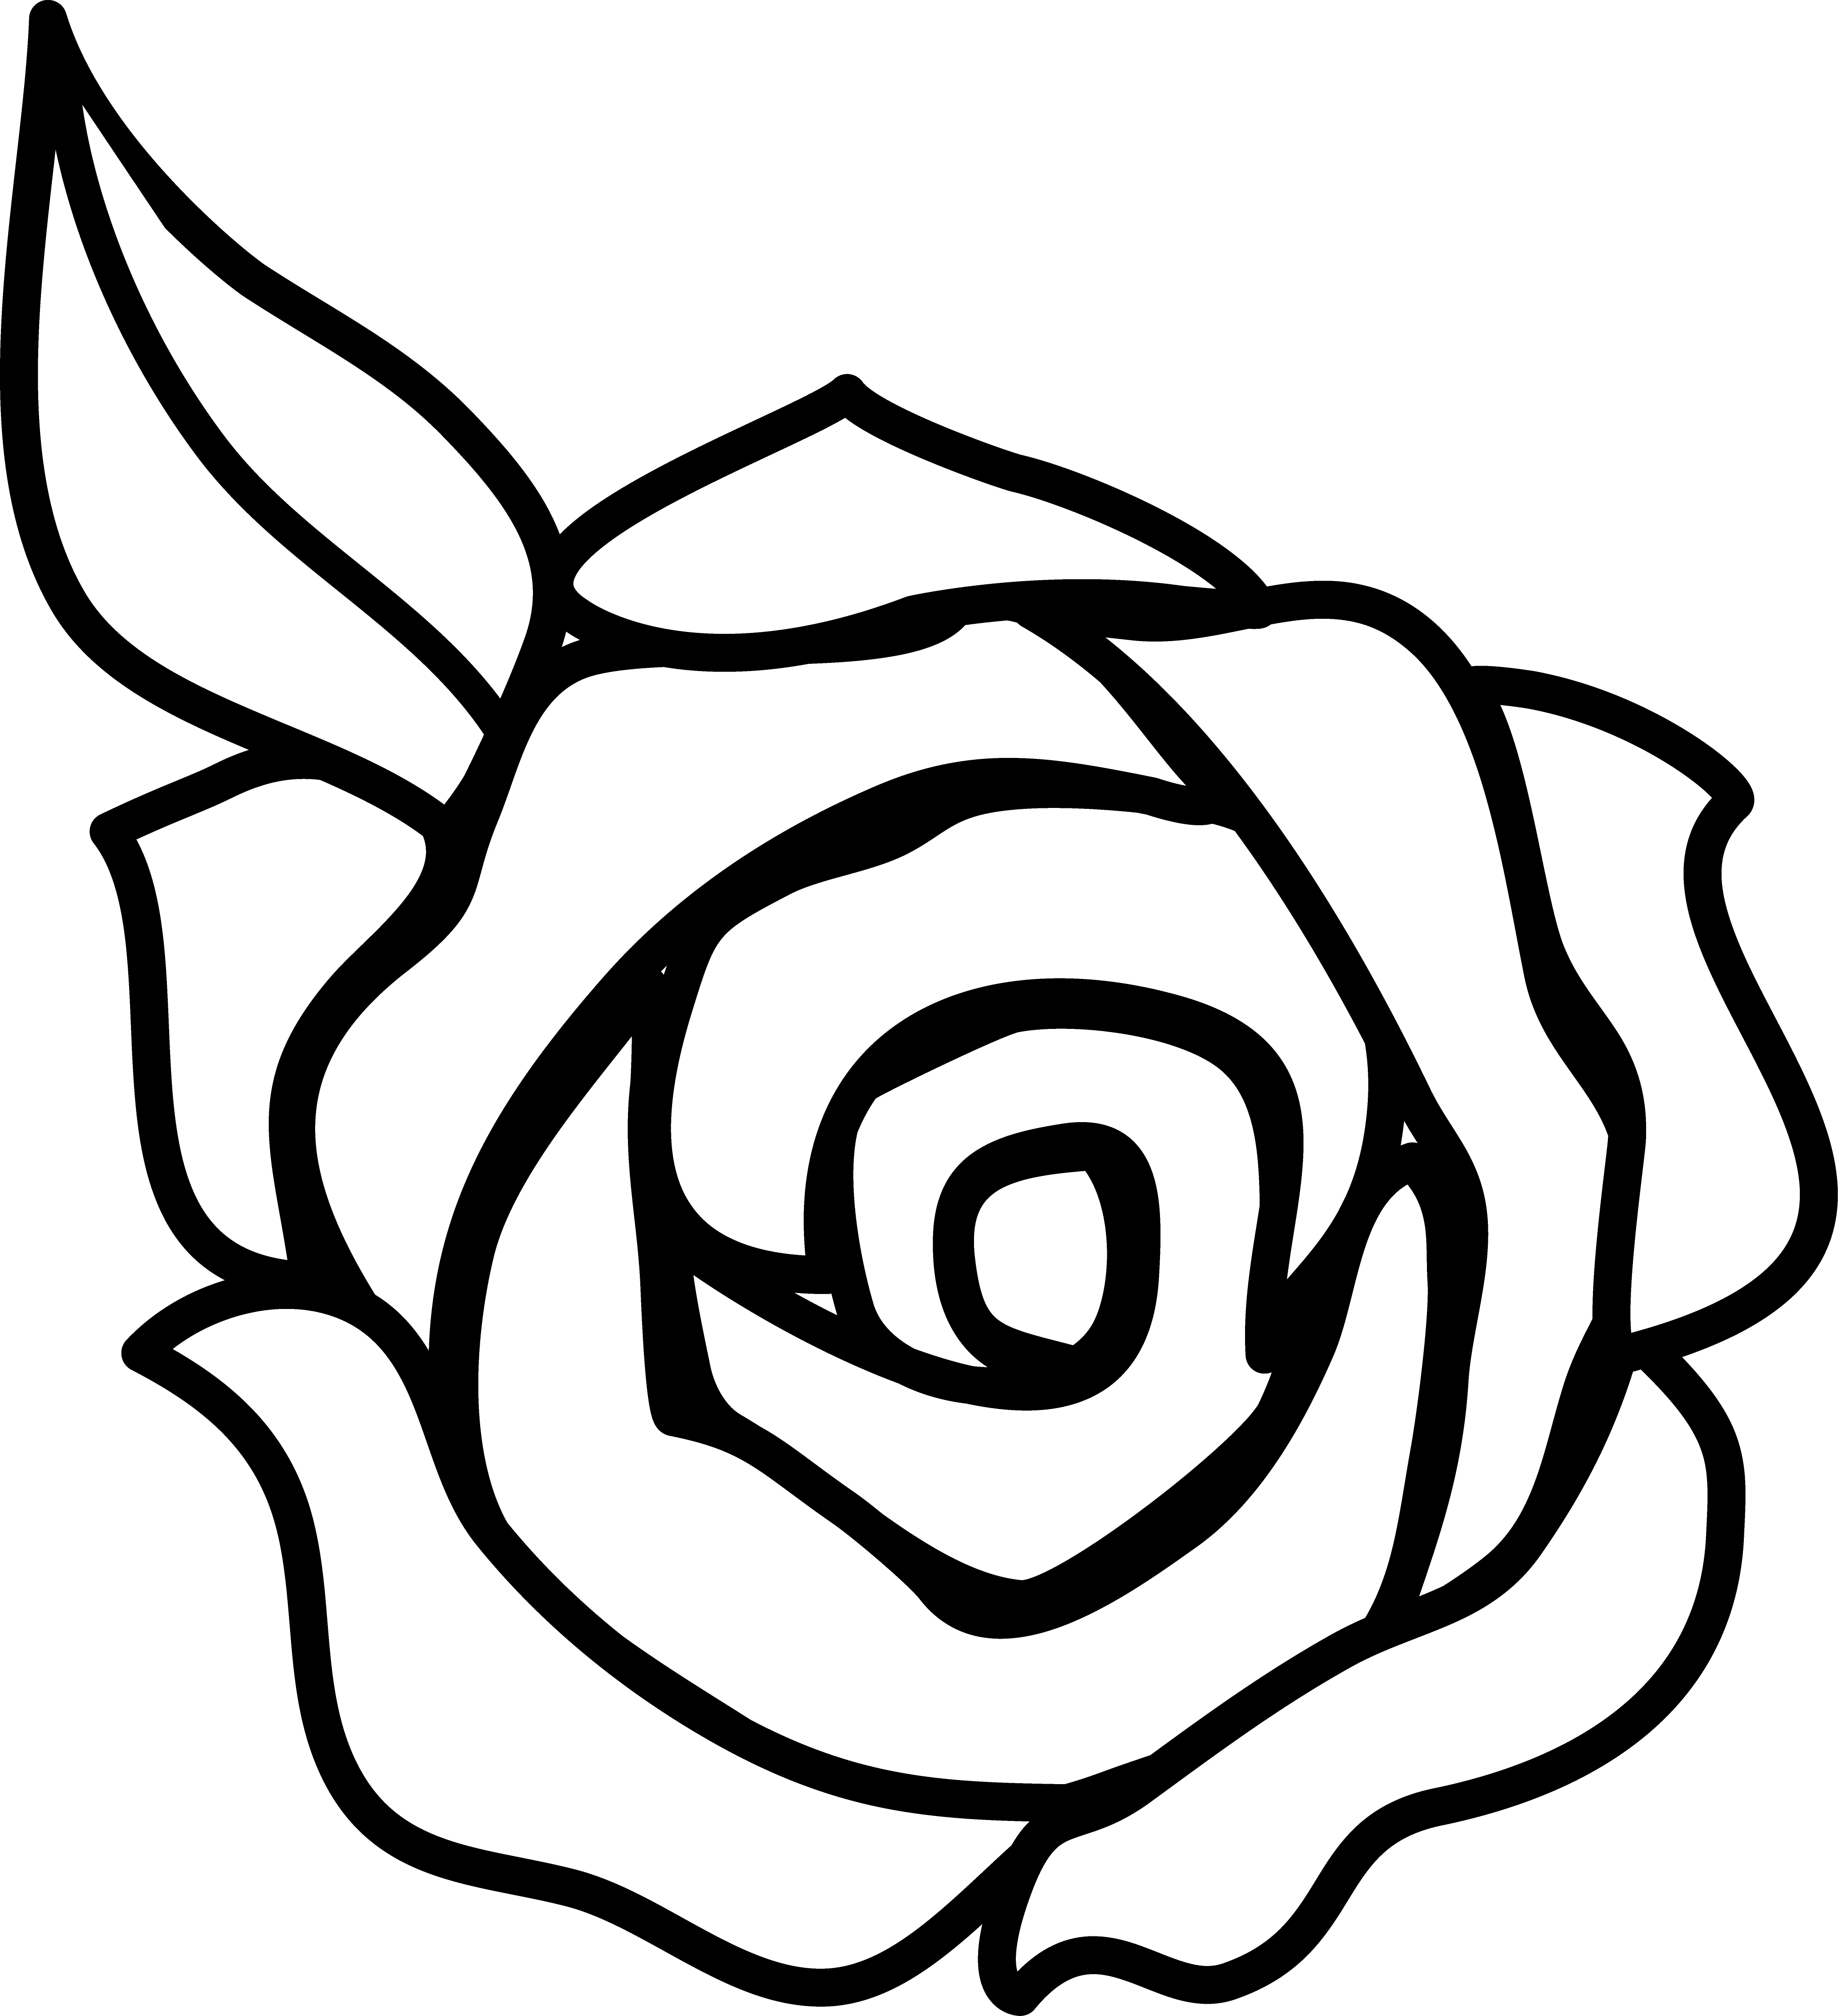 4042x4434 Rose Black And White Rose Clip Art Black And White Free Clipart